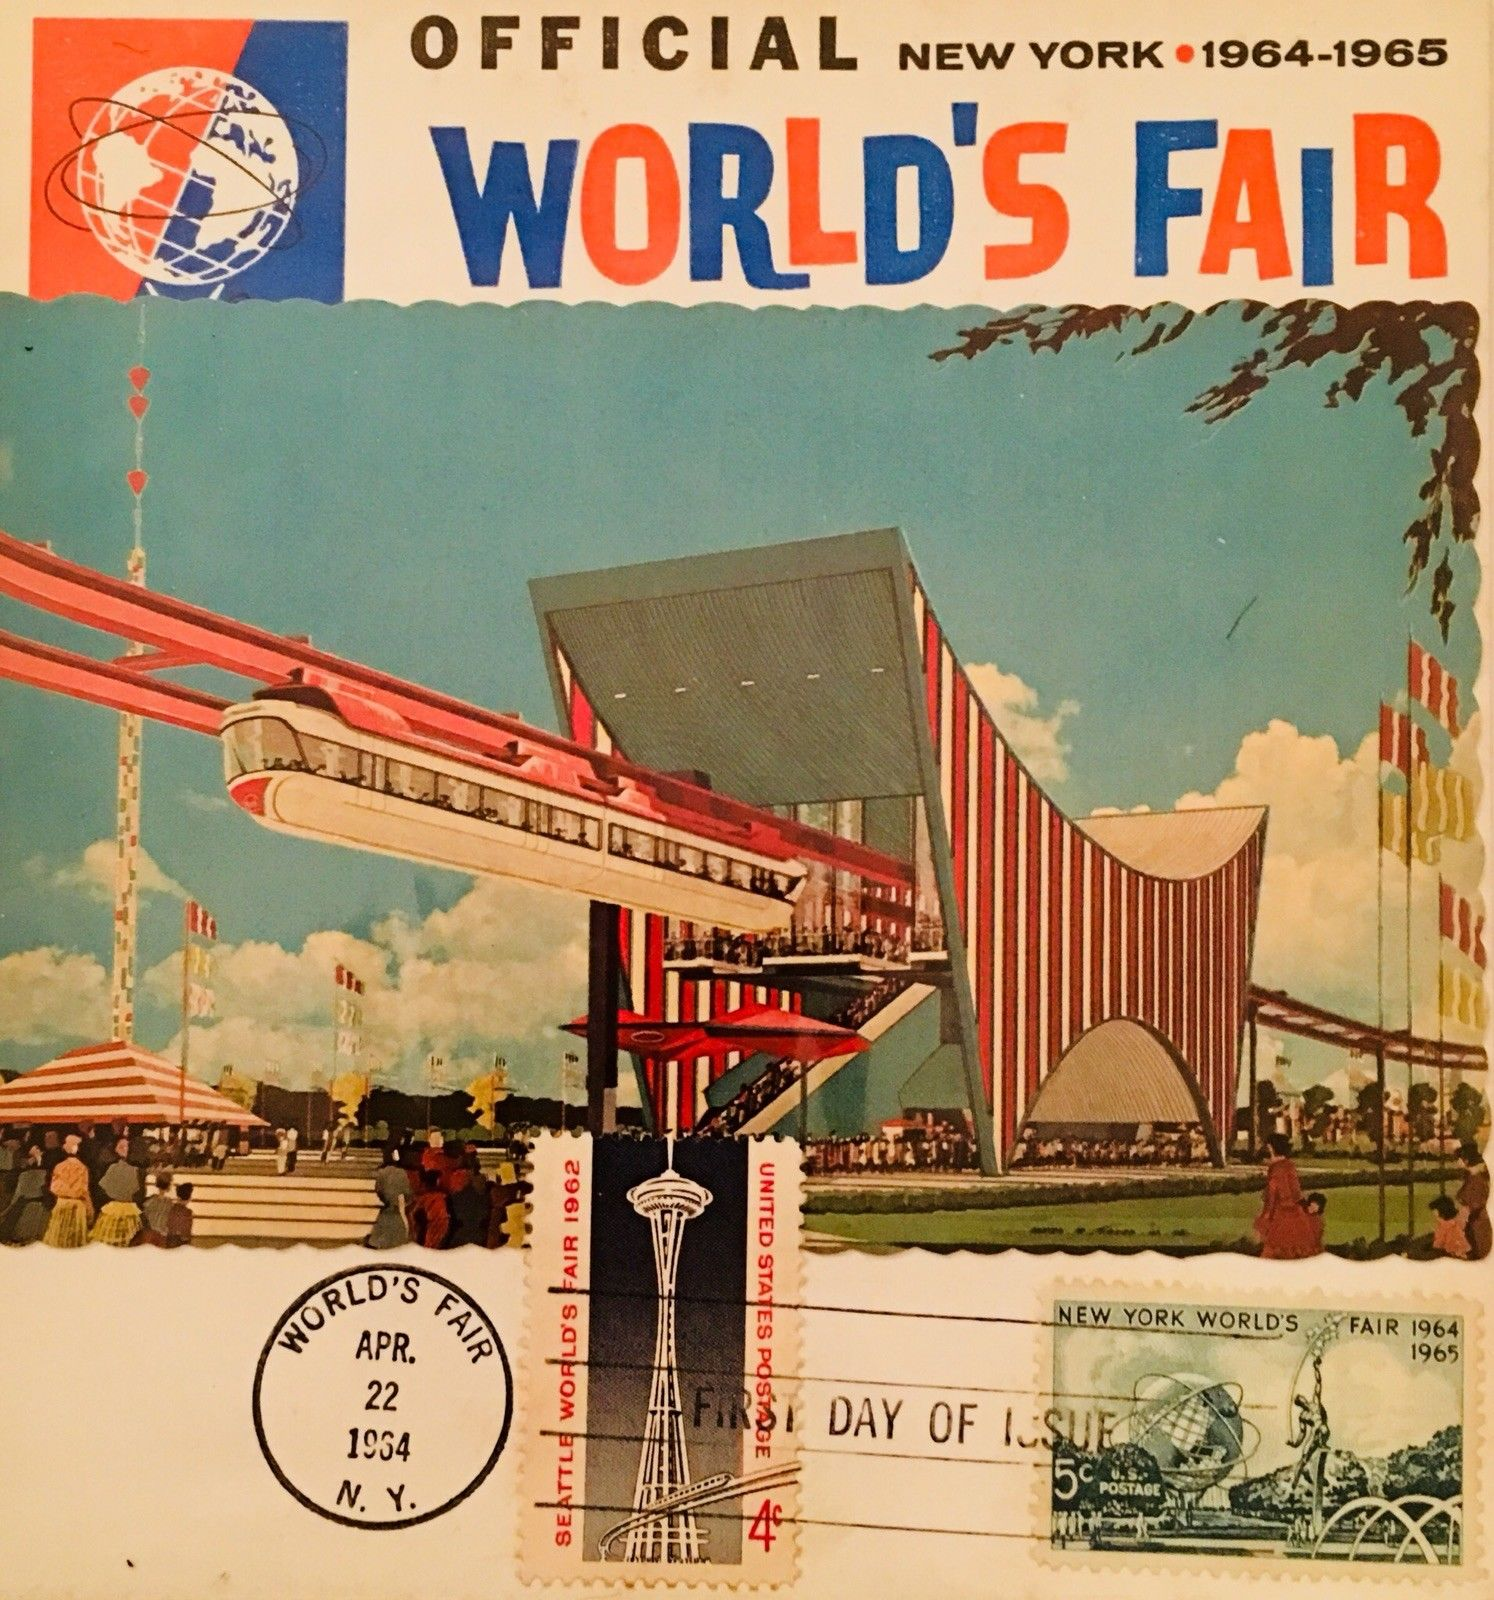 Square-shaped maximum card from the 1964-1965 New York World's Fair bearing U.S. Scott #1244 released on April 22, 1964, as well as the stamp issued for the 1962 Century 21 Exposition (Seattle World's Fair), released on April 21, 1962 (Scott #1196).